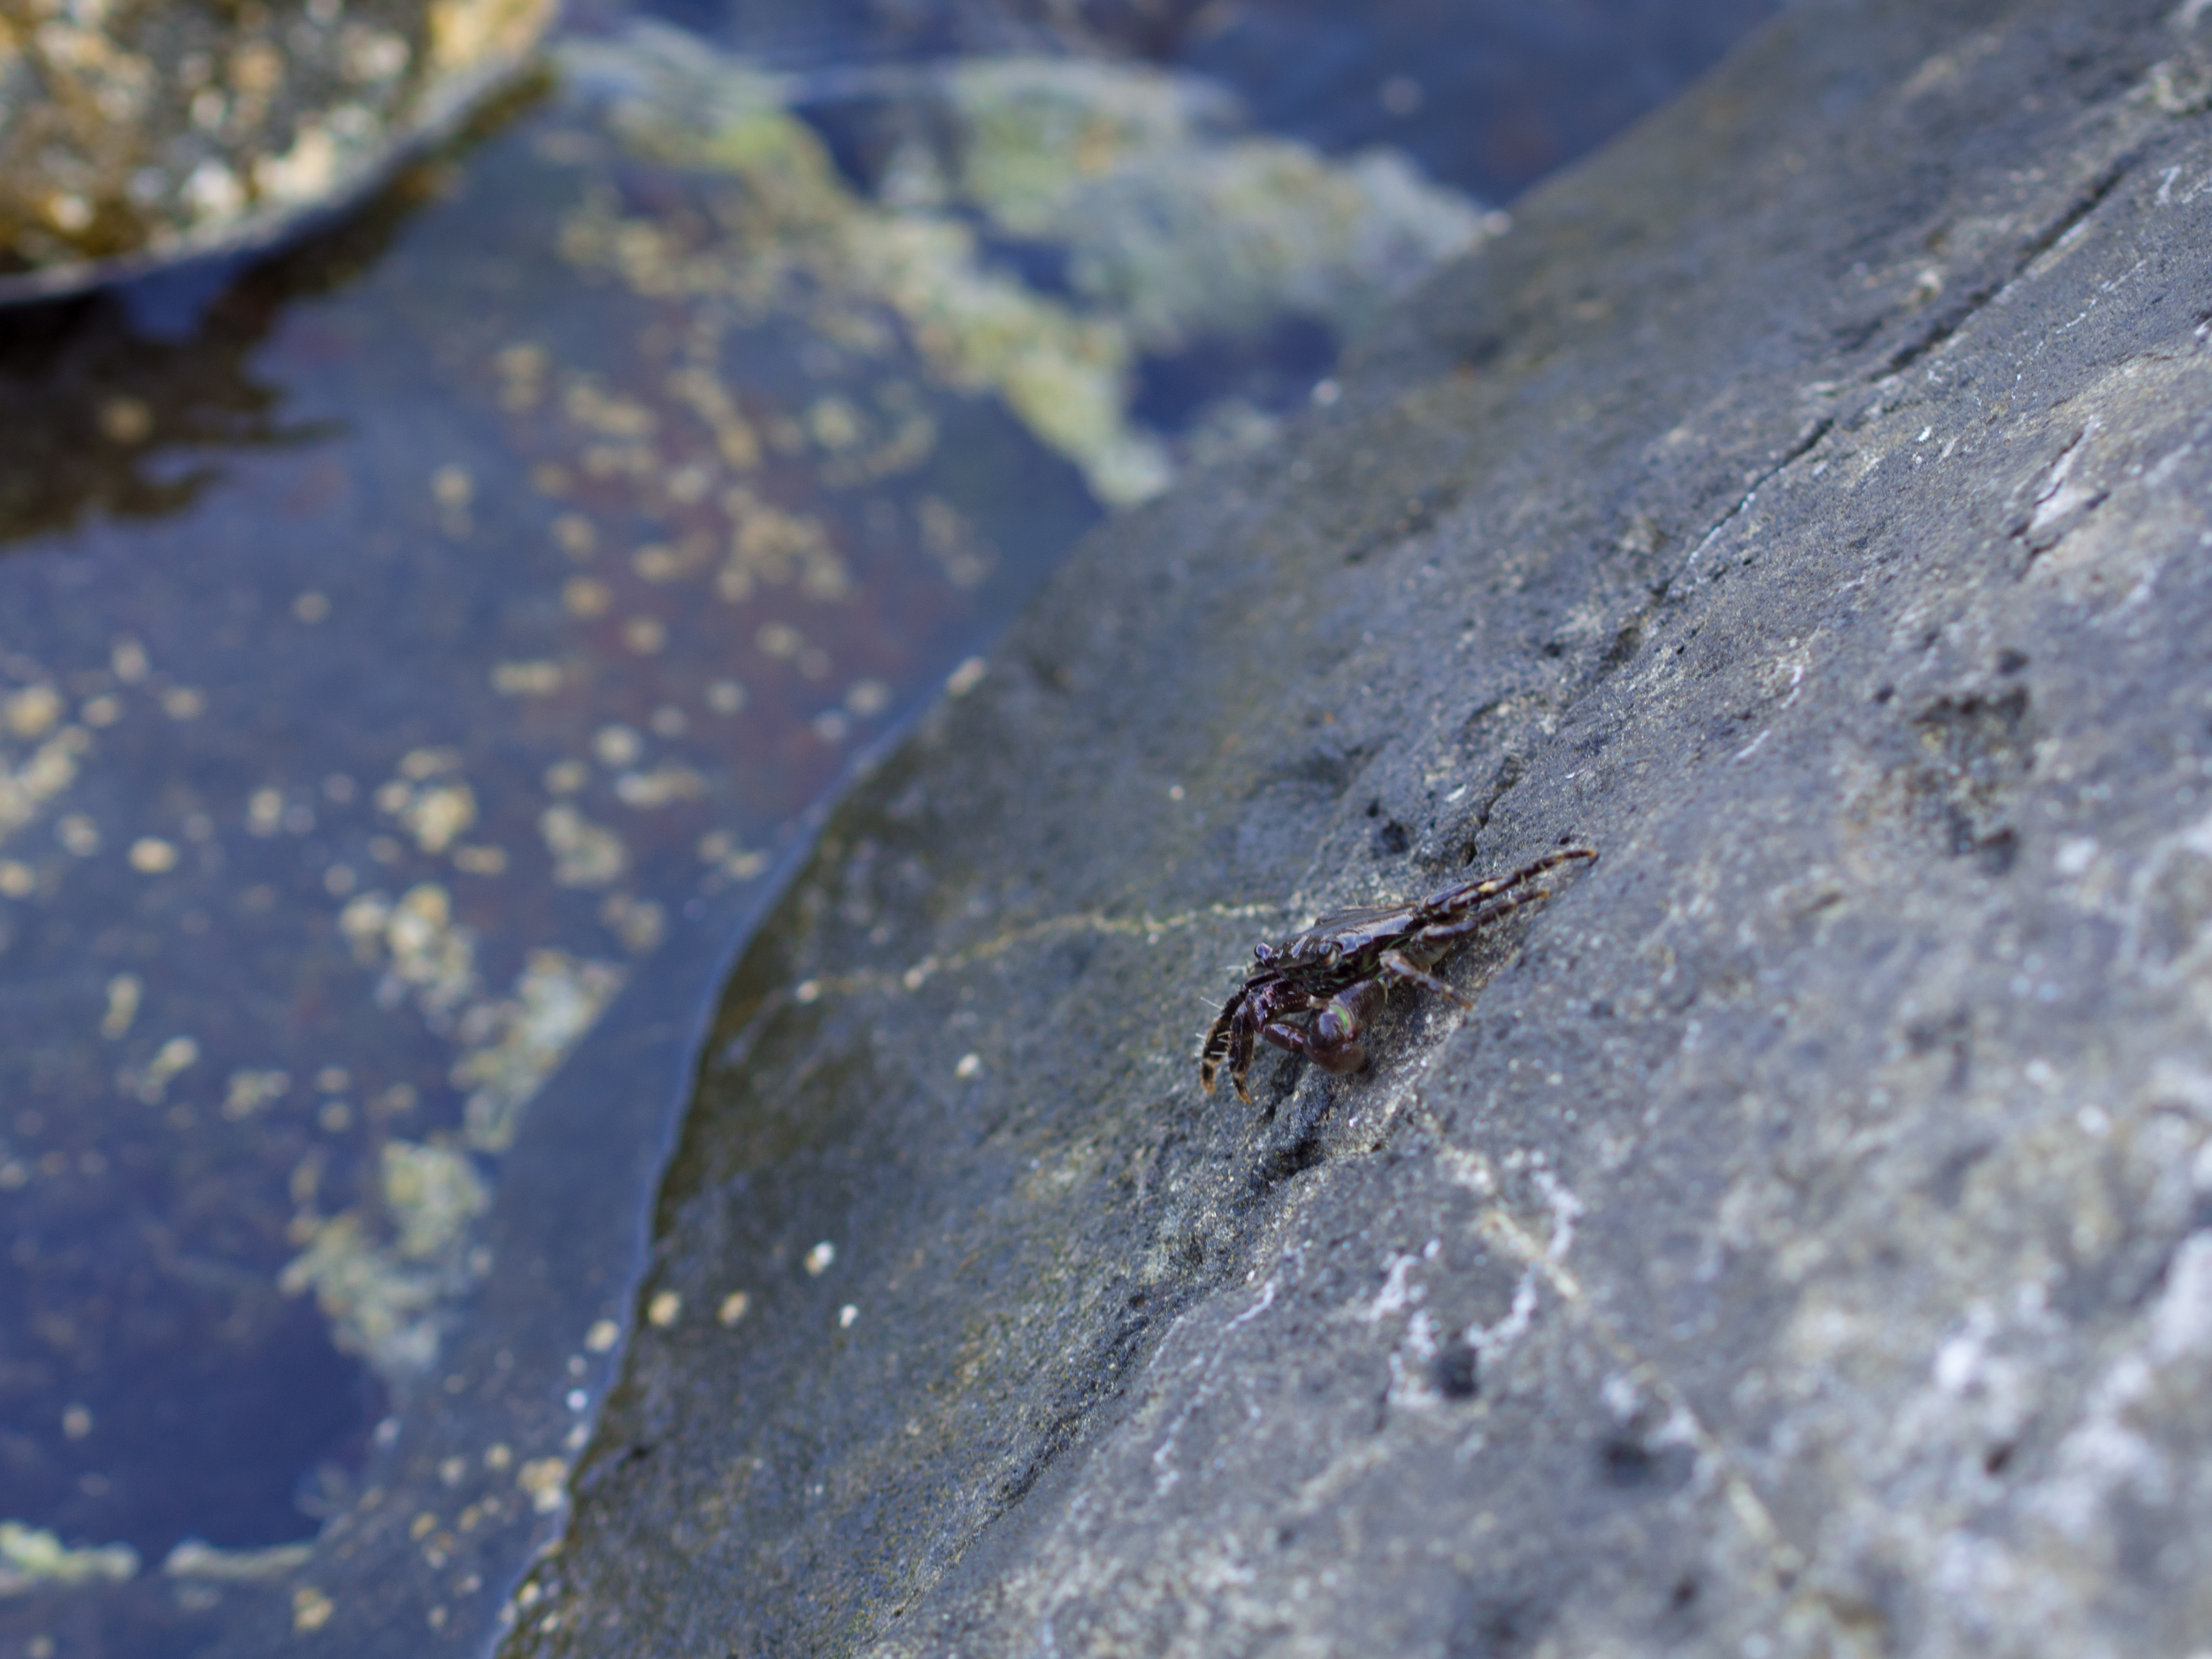 one of the many crabs around the rocks here.